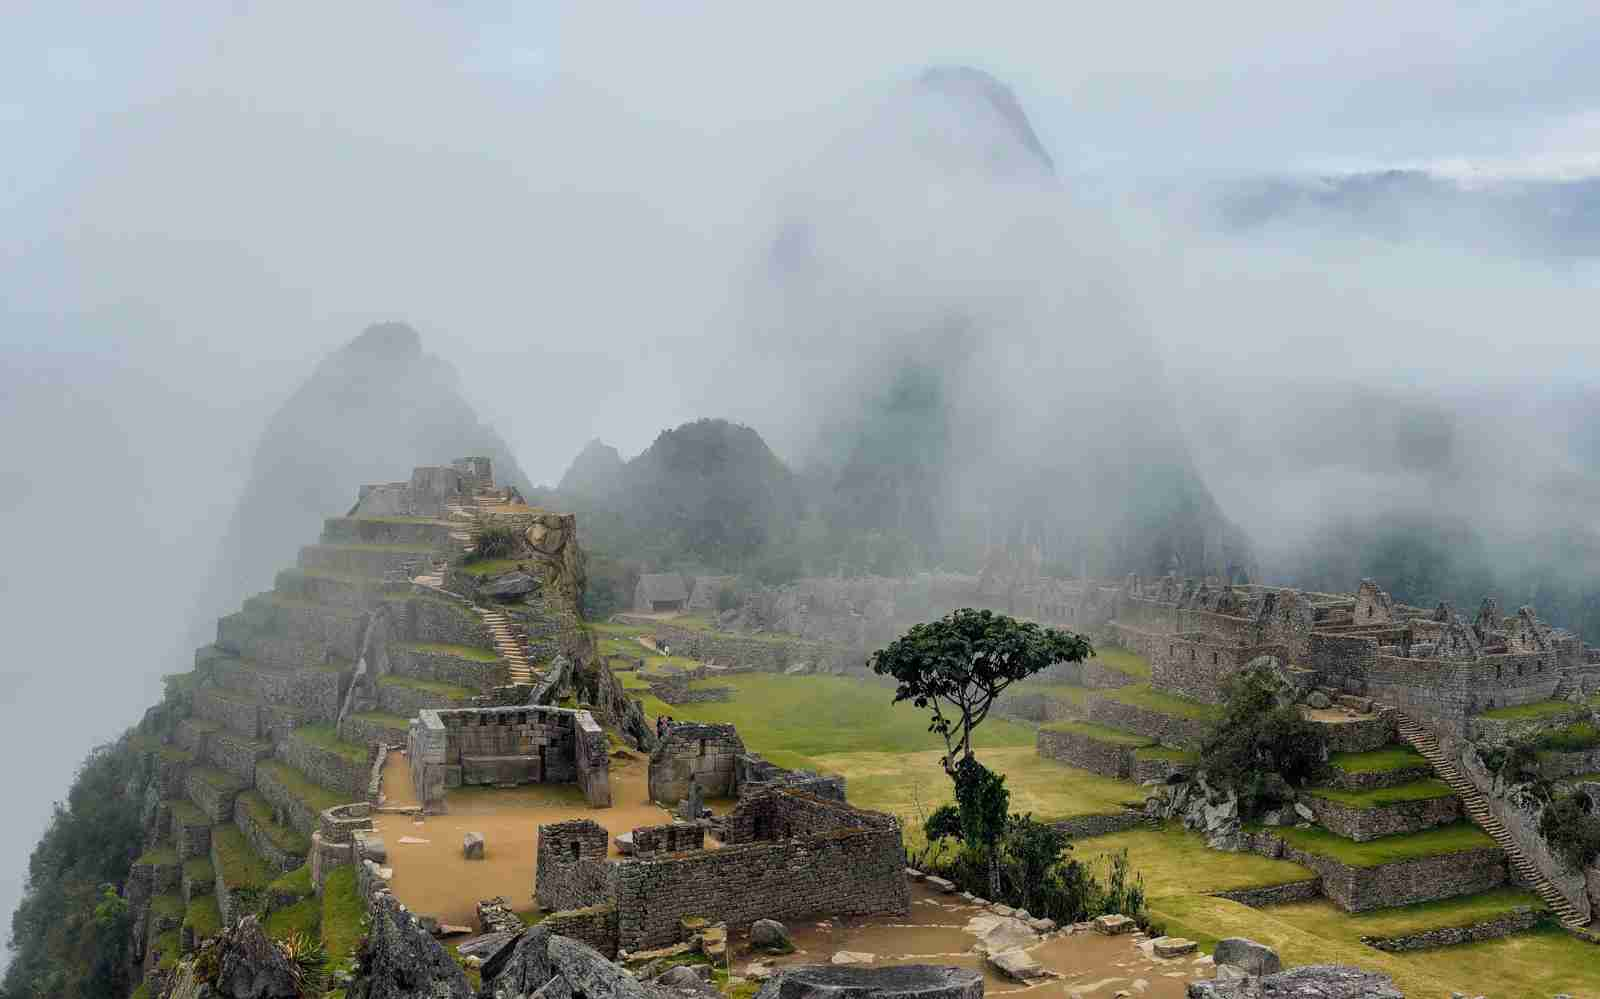 Misty Machu Picchu. (Photo by Pedro Lastra / Unsplash)